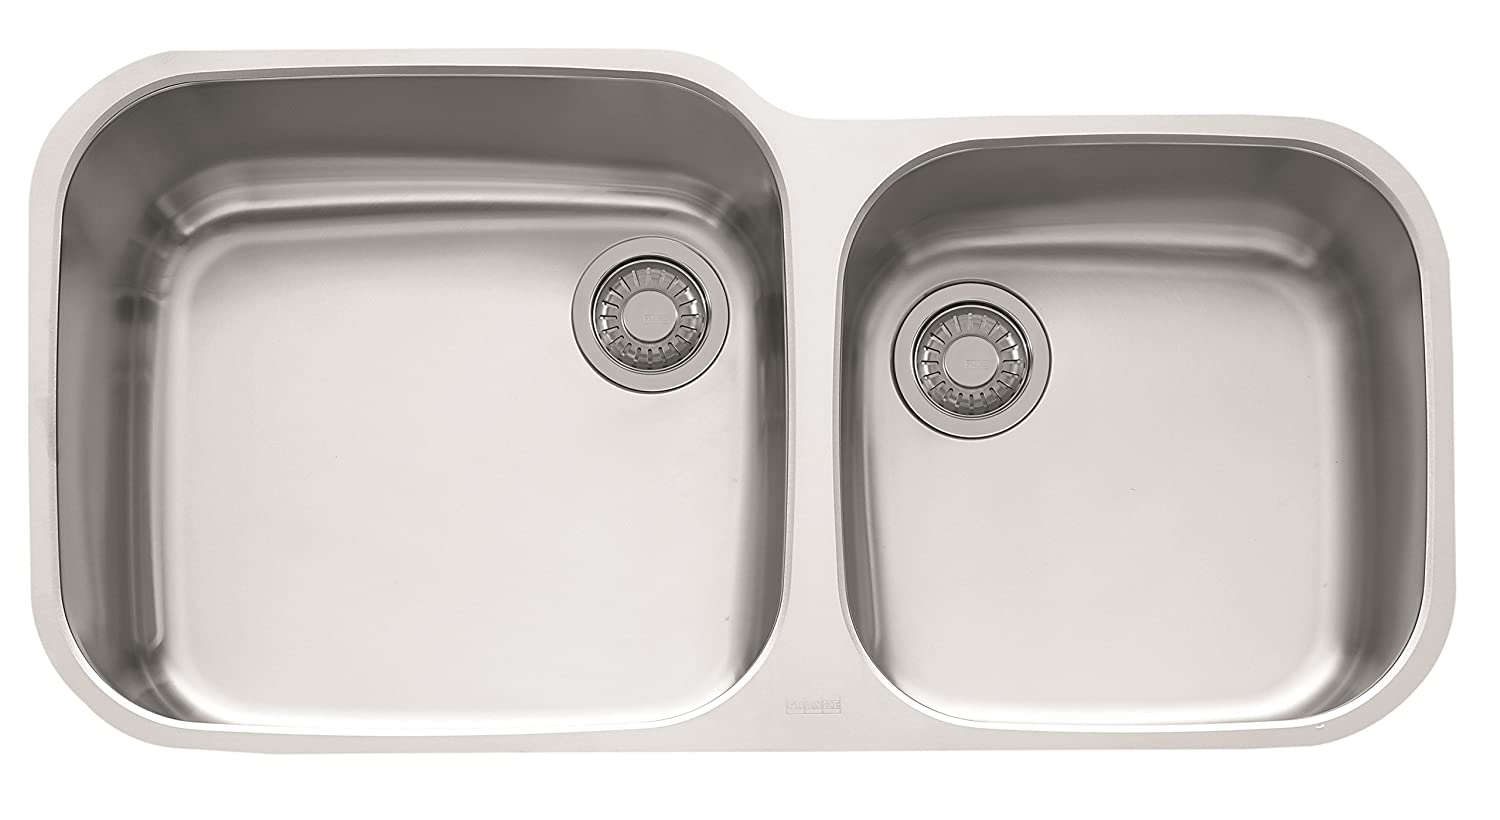 Franke GNX120 Europro 38 3 8 x 19 1 4 x 9 1 16 18 Gauge Undermount Dual Bowl Stainless Steel Kitchen Sink